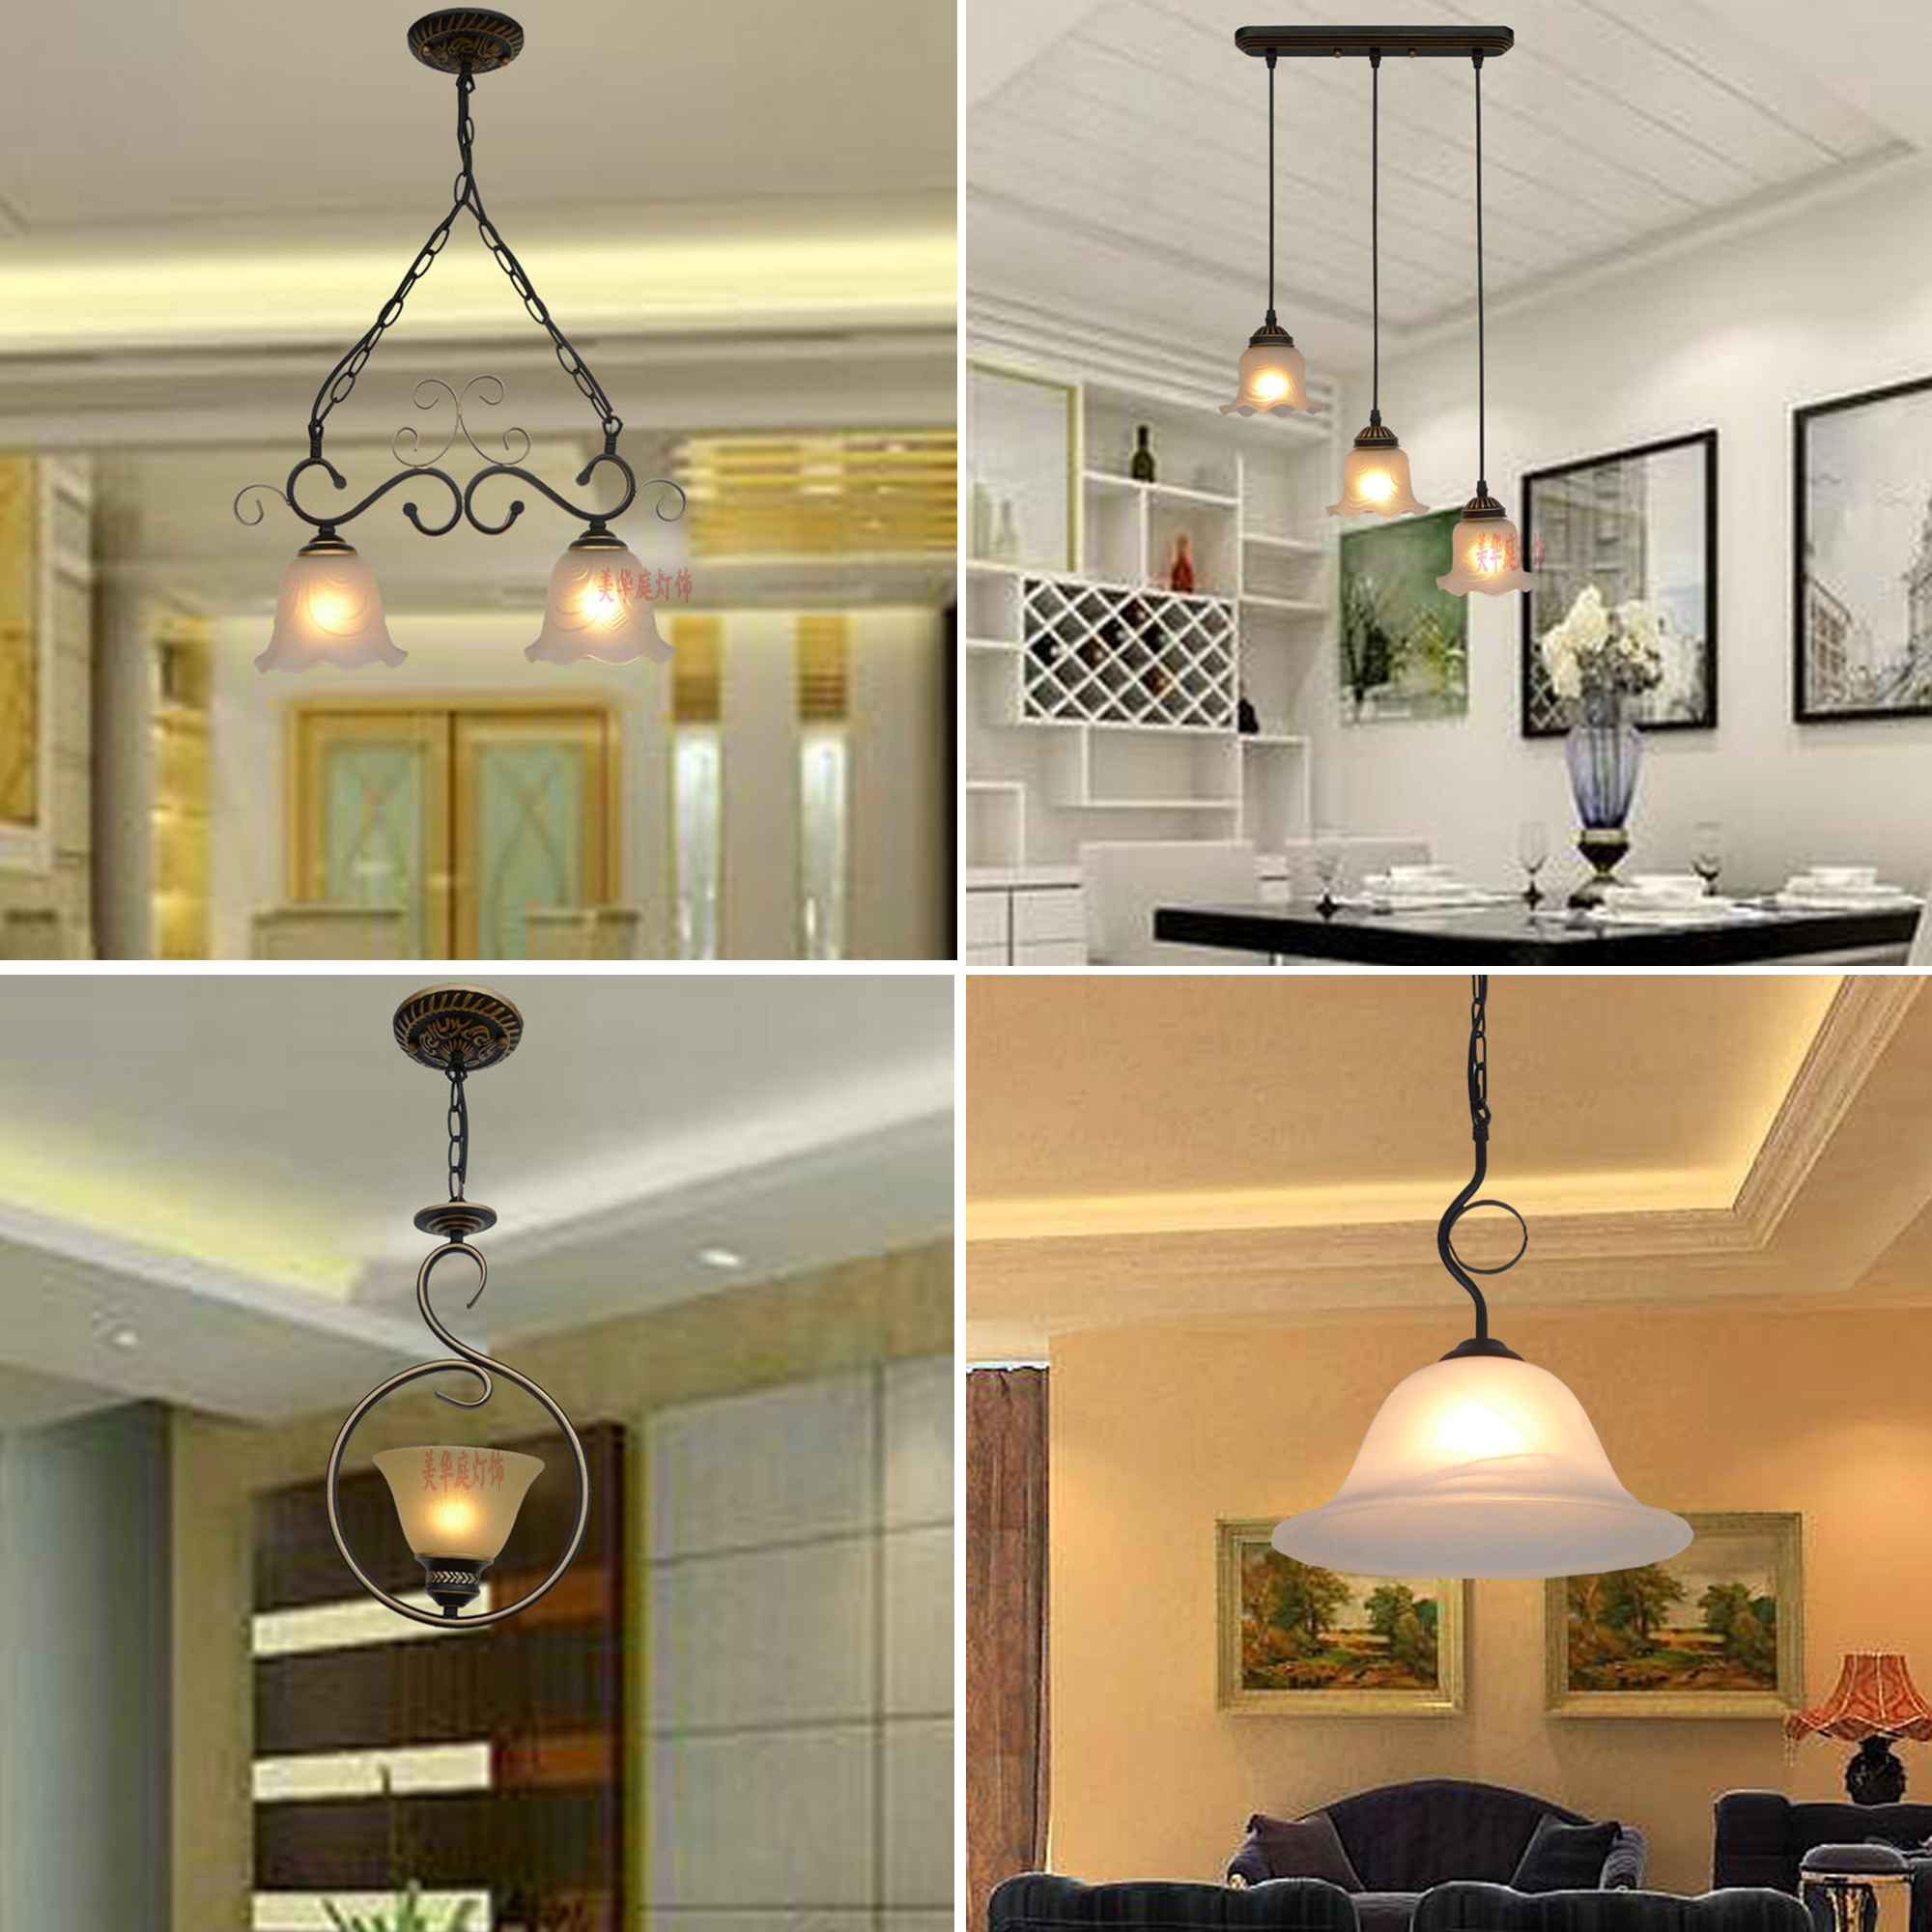 HGhomeart Home Lighting Retro Iron Led Pendant Light Lamp 110-220V E27 Dining Room Lights Luminaria Vintage Loft Lamp Fixtures new chinese style vintage pendant lights wood and bamboo for dining room hotel hall home loft led pendant lamp light ac110v 220v